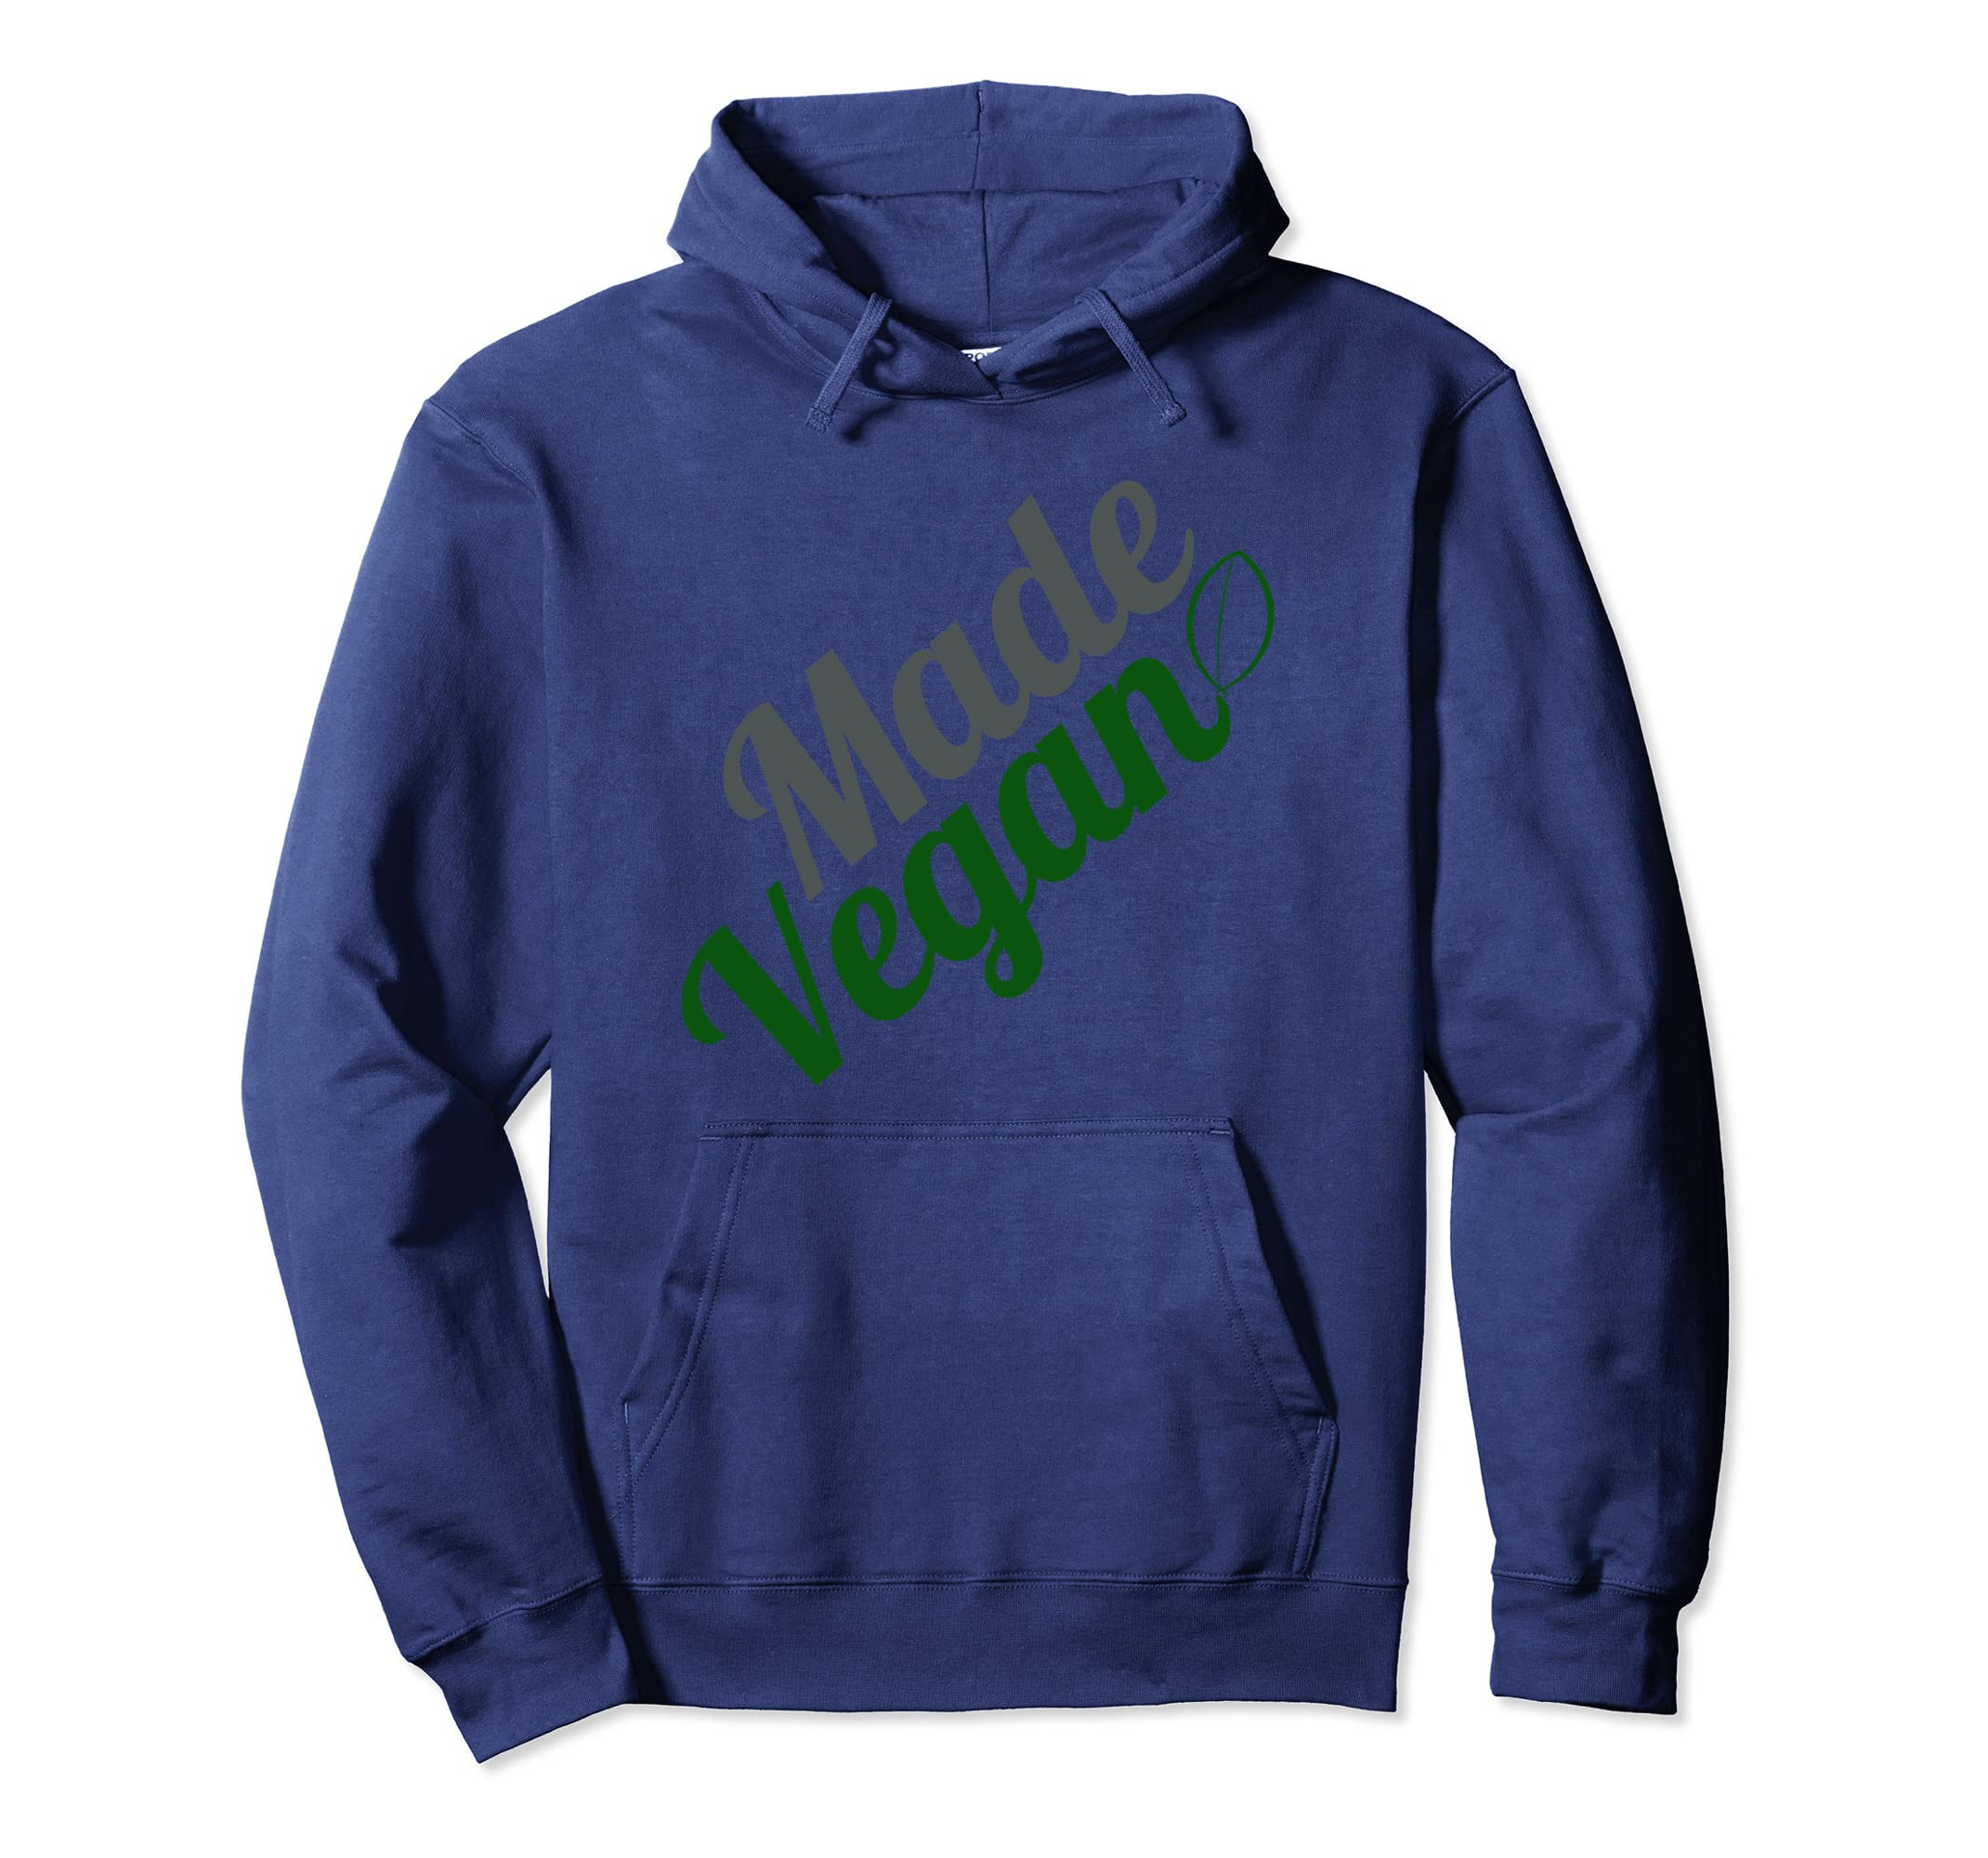 Amazon Vegetarian Hoodie Funny Made Vegan Gift Idea Vegetarianism Clothing